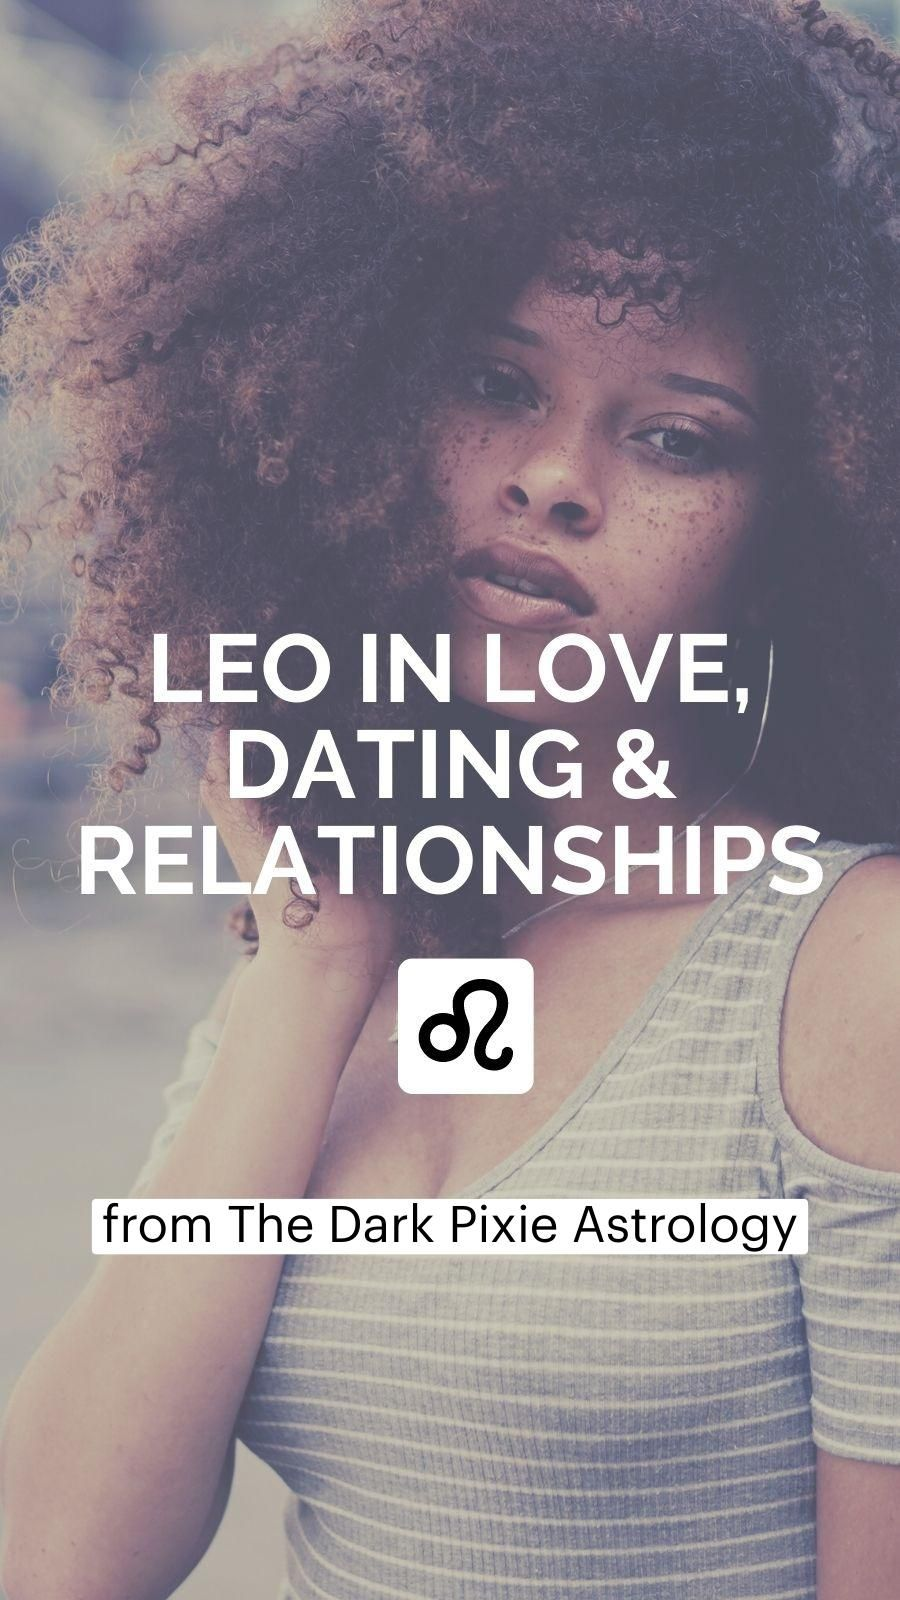 Leo in Love, Dating & Relationships - Astrology